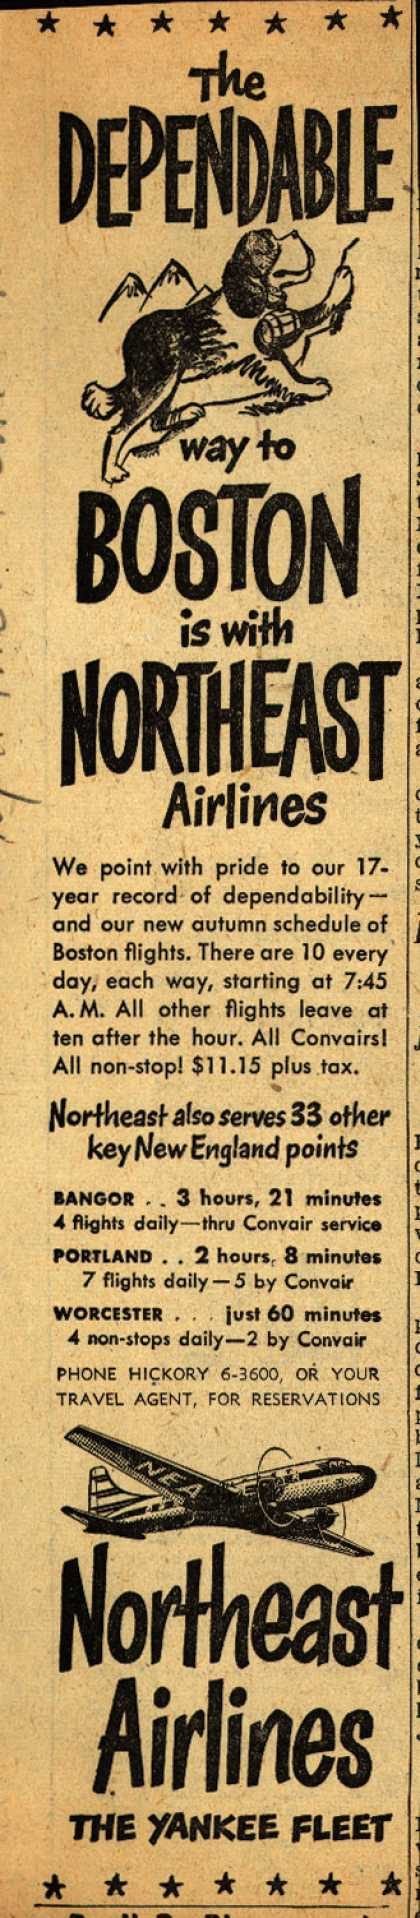 Northeast Airline's Boston – The DEPENDABLE way to BOSTON is with NORTHEAST Airlines (1950)